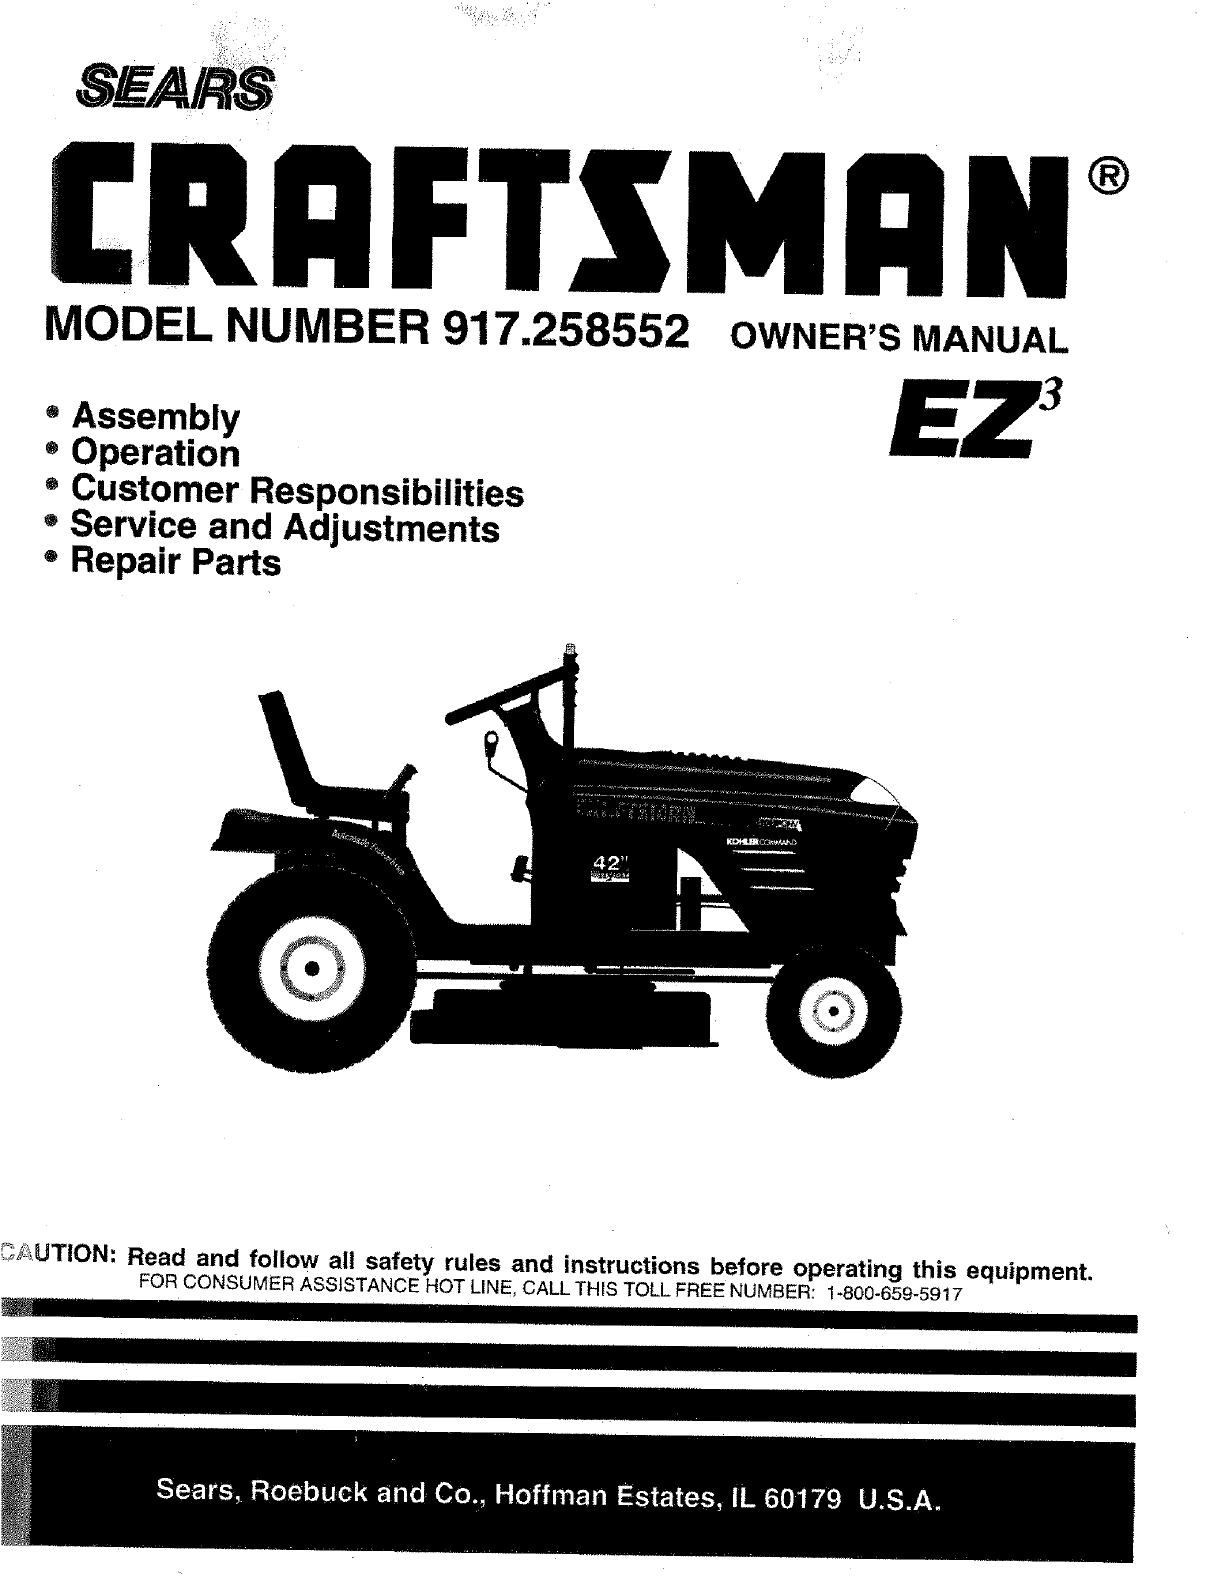 33079986 30f9 44d1 813d 03385cde631a bg1 sears lawn mower 917 258552 user guide manualsonline com craftsman lt4000 wiring diagram at crackthecode.co